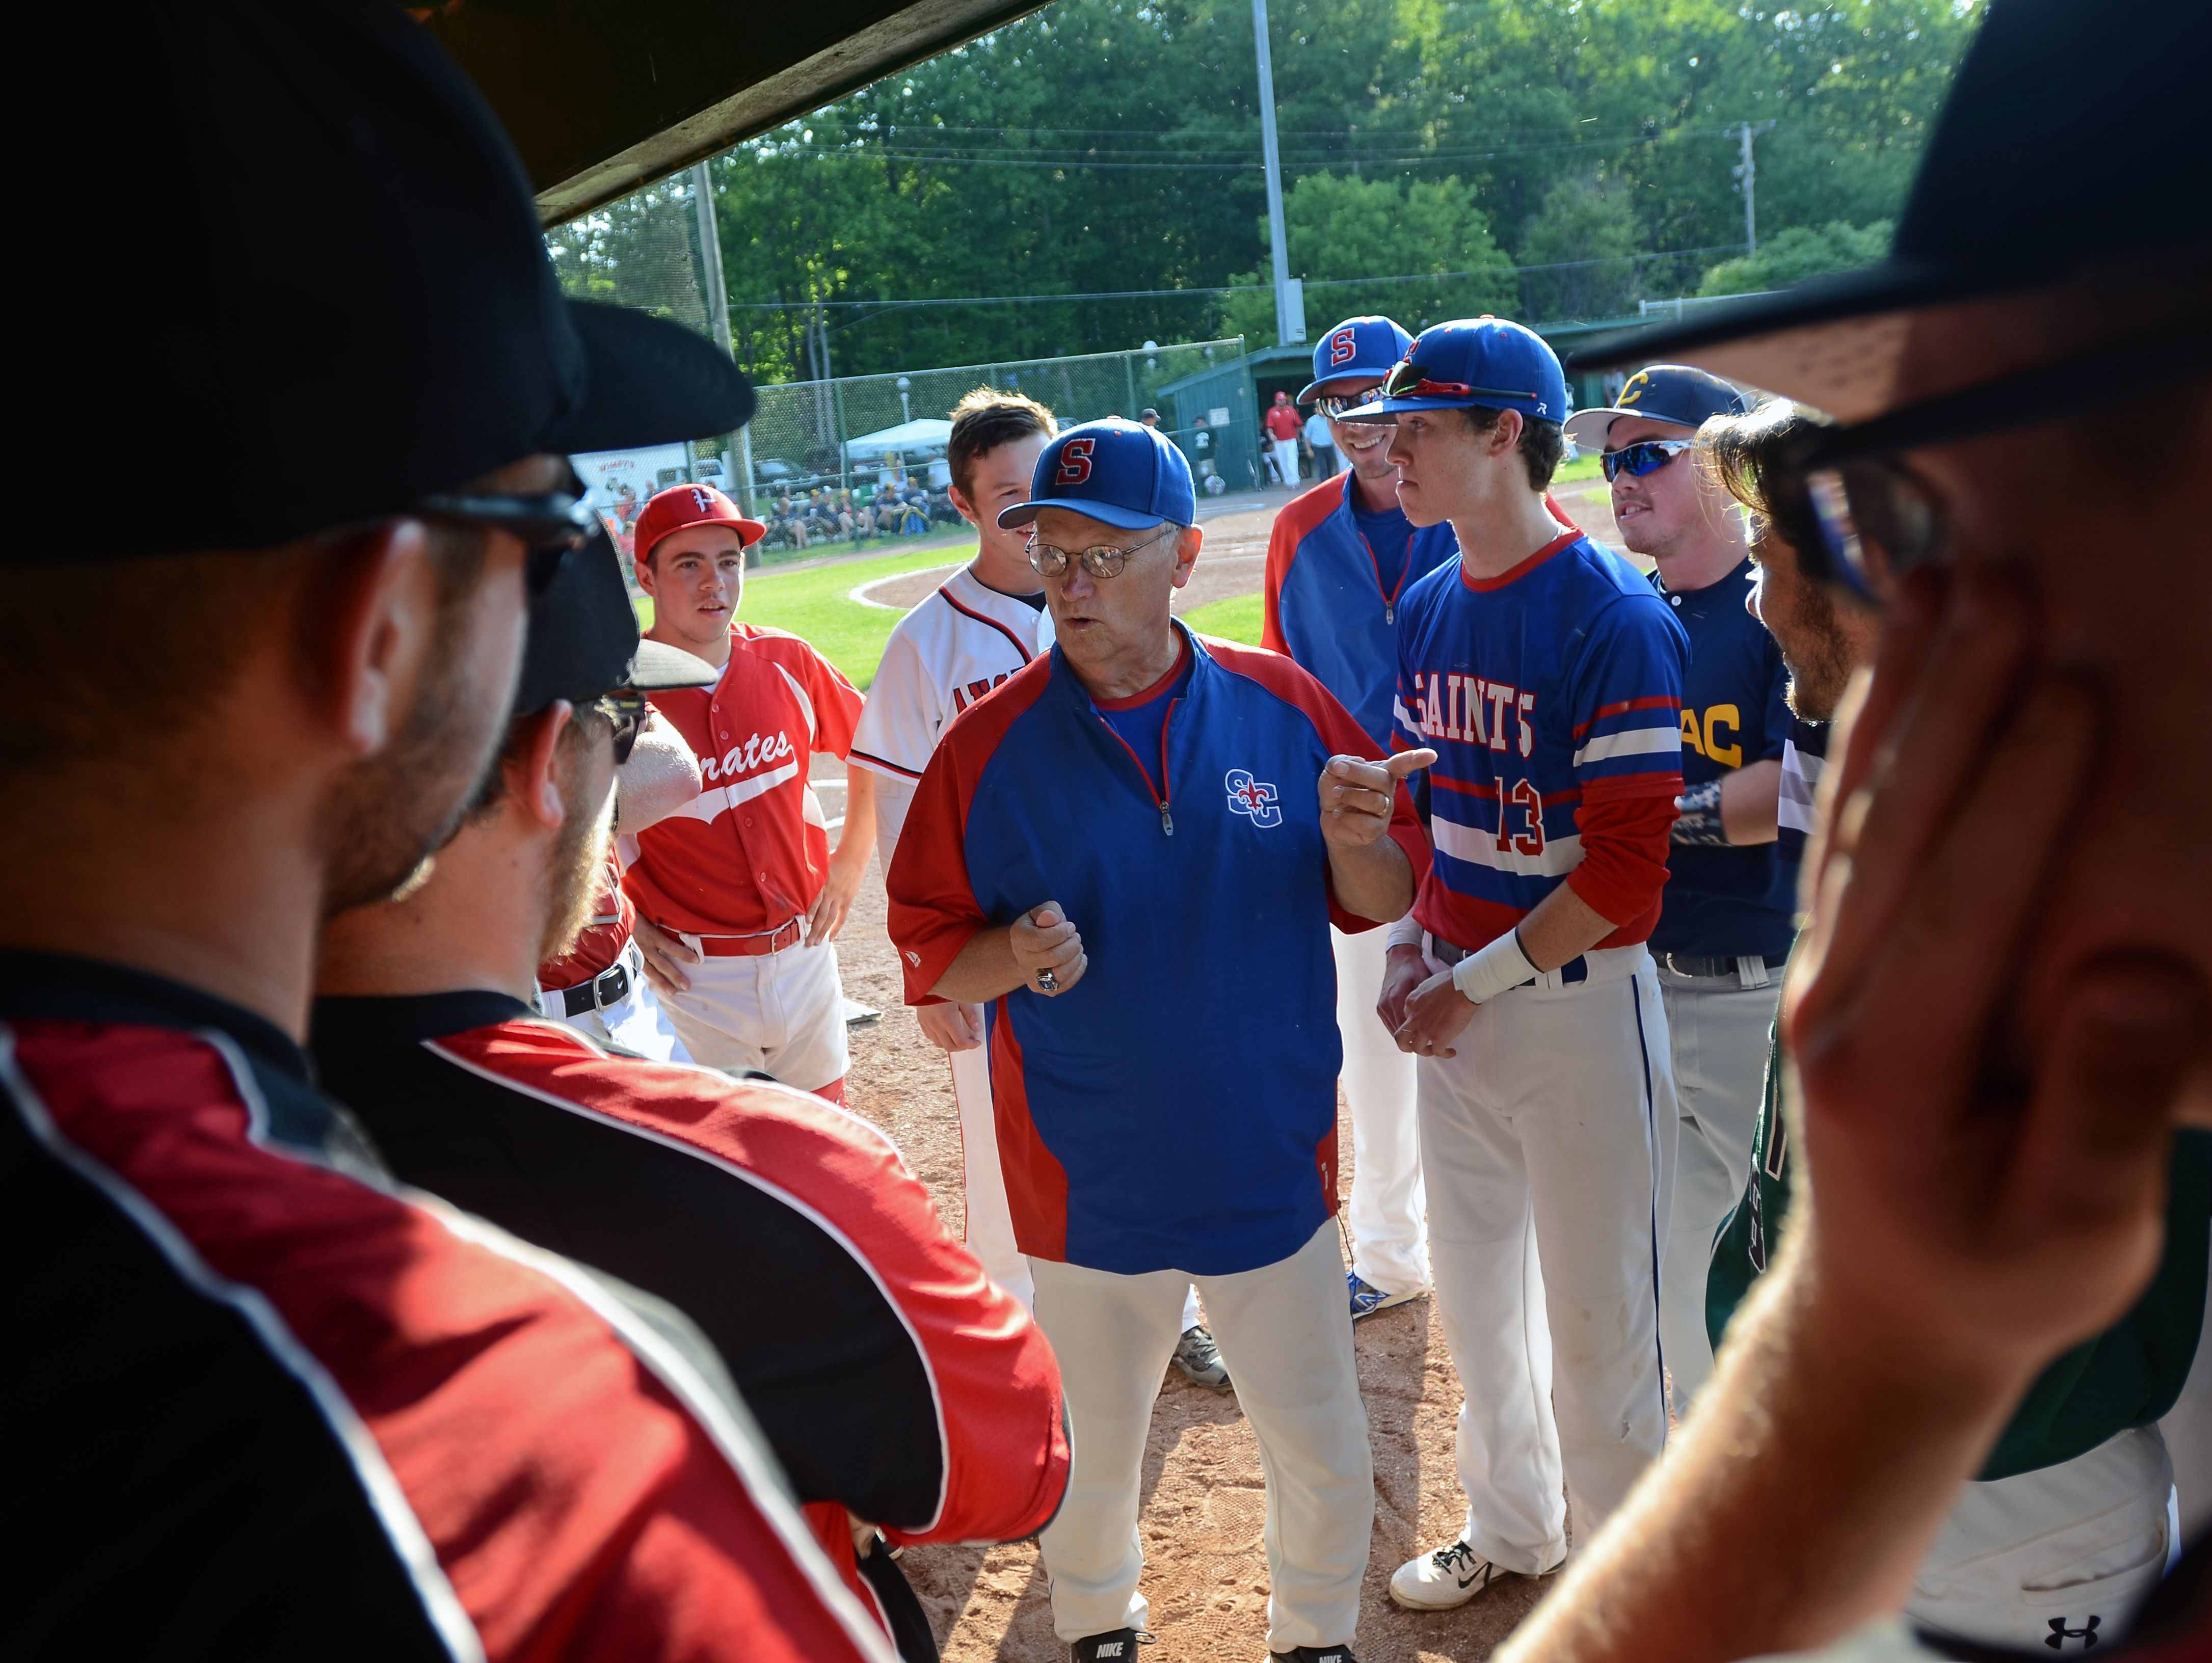 St. Clair coach Denny White says a few words to his Blue Team Monday, June 19, before the SC4 Blue Water Area All-Star Game at Sanborn Park.